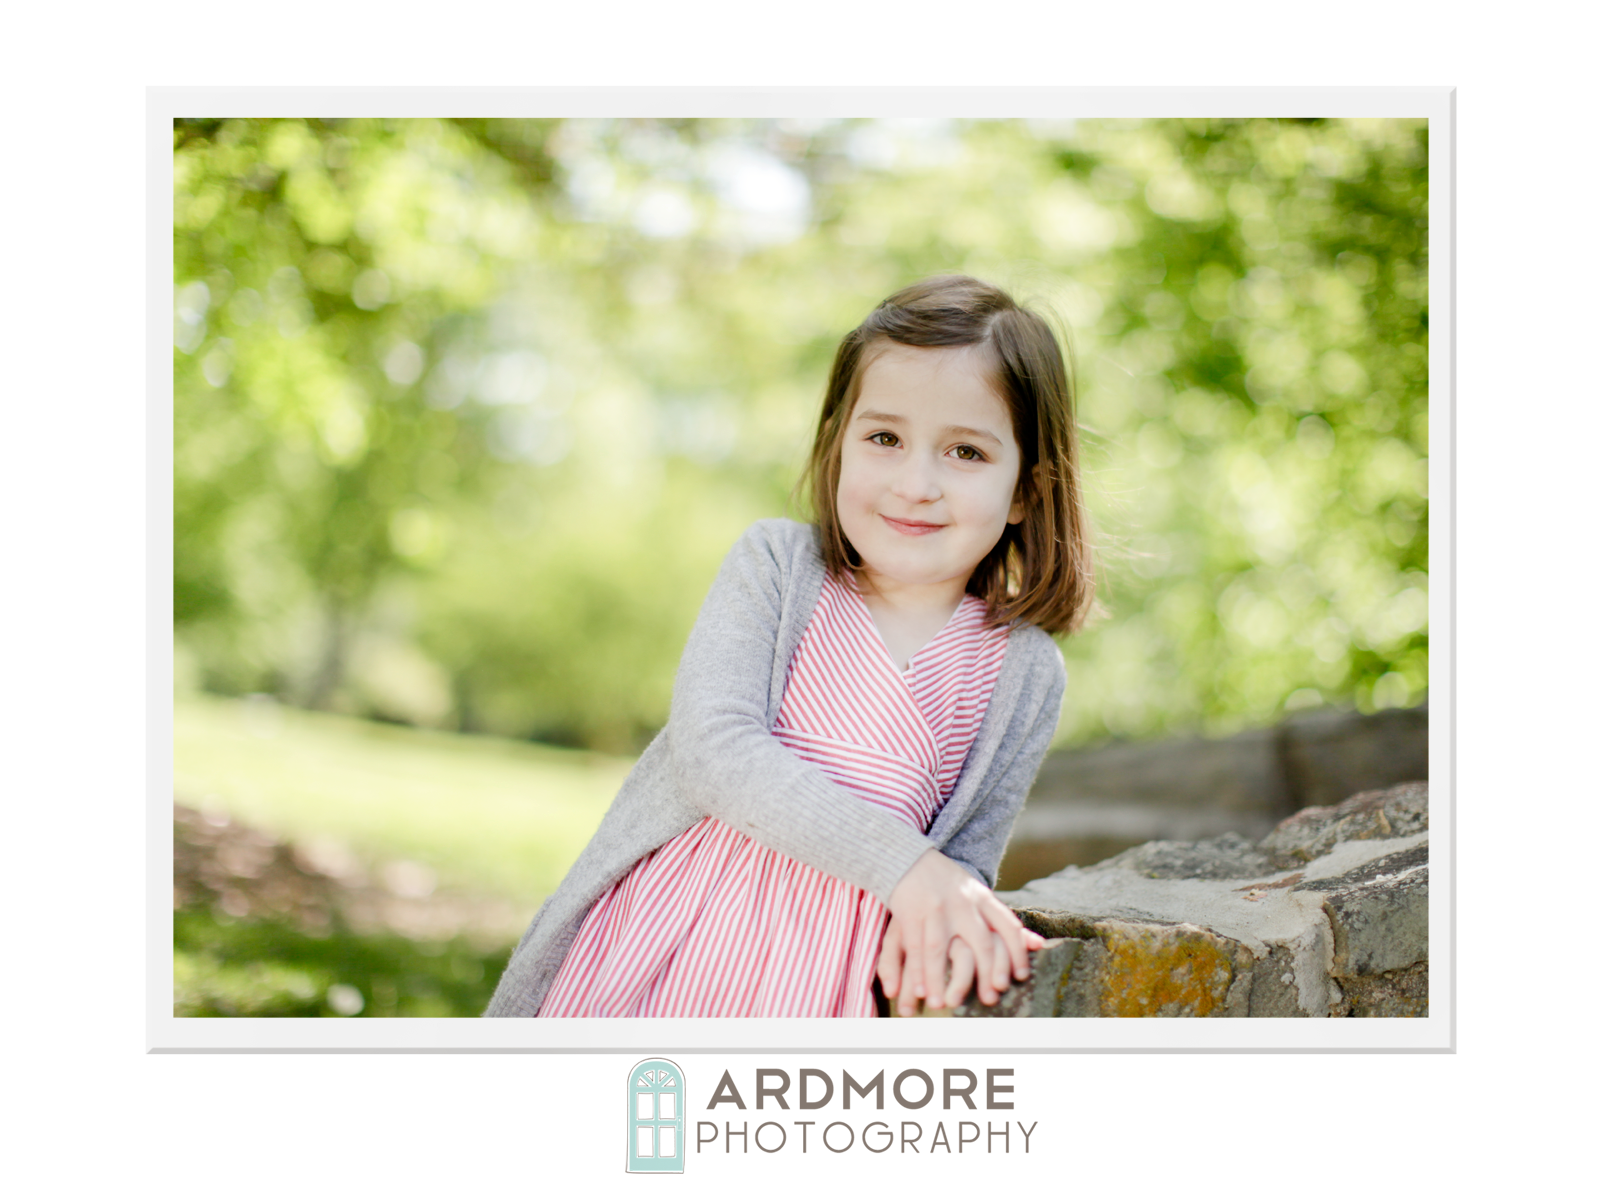 Ready for Kindergarten Ardmore Photography Ardmore Photography